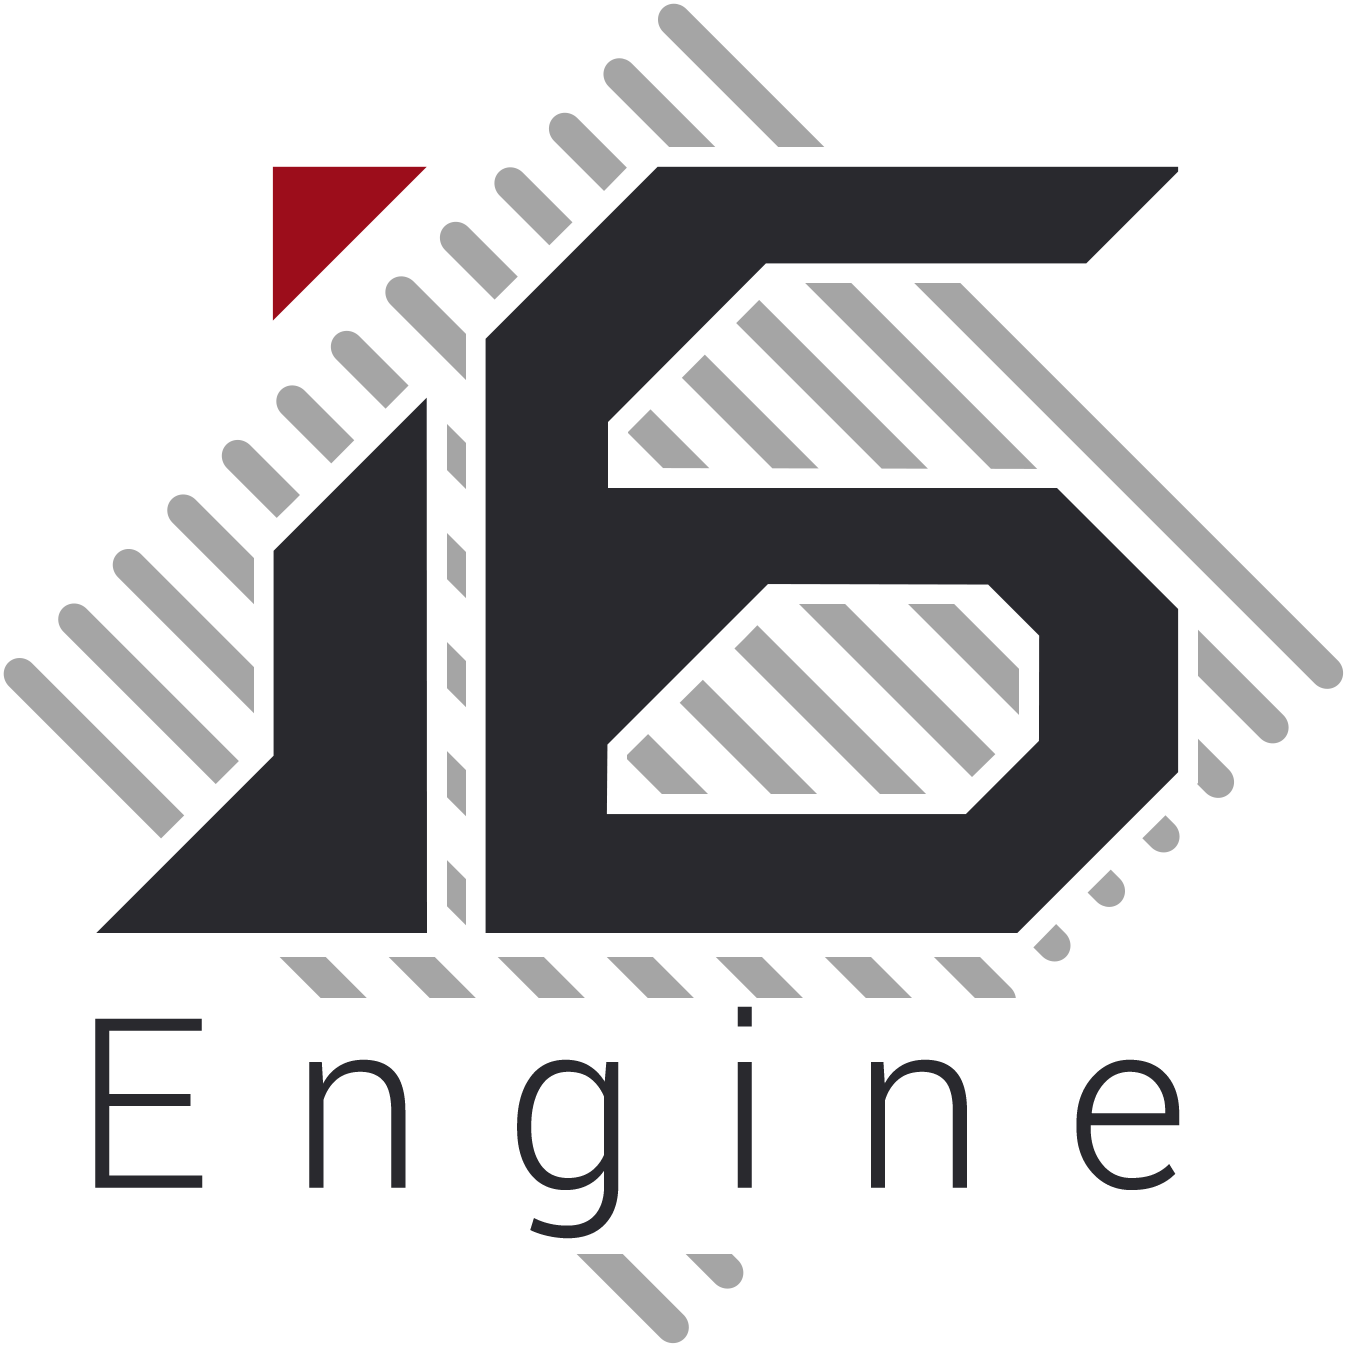 i6engine logo